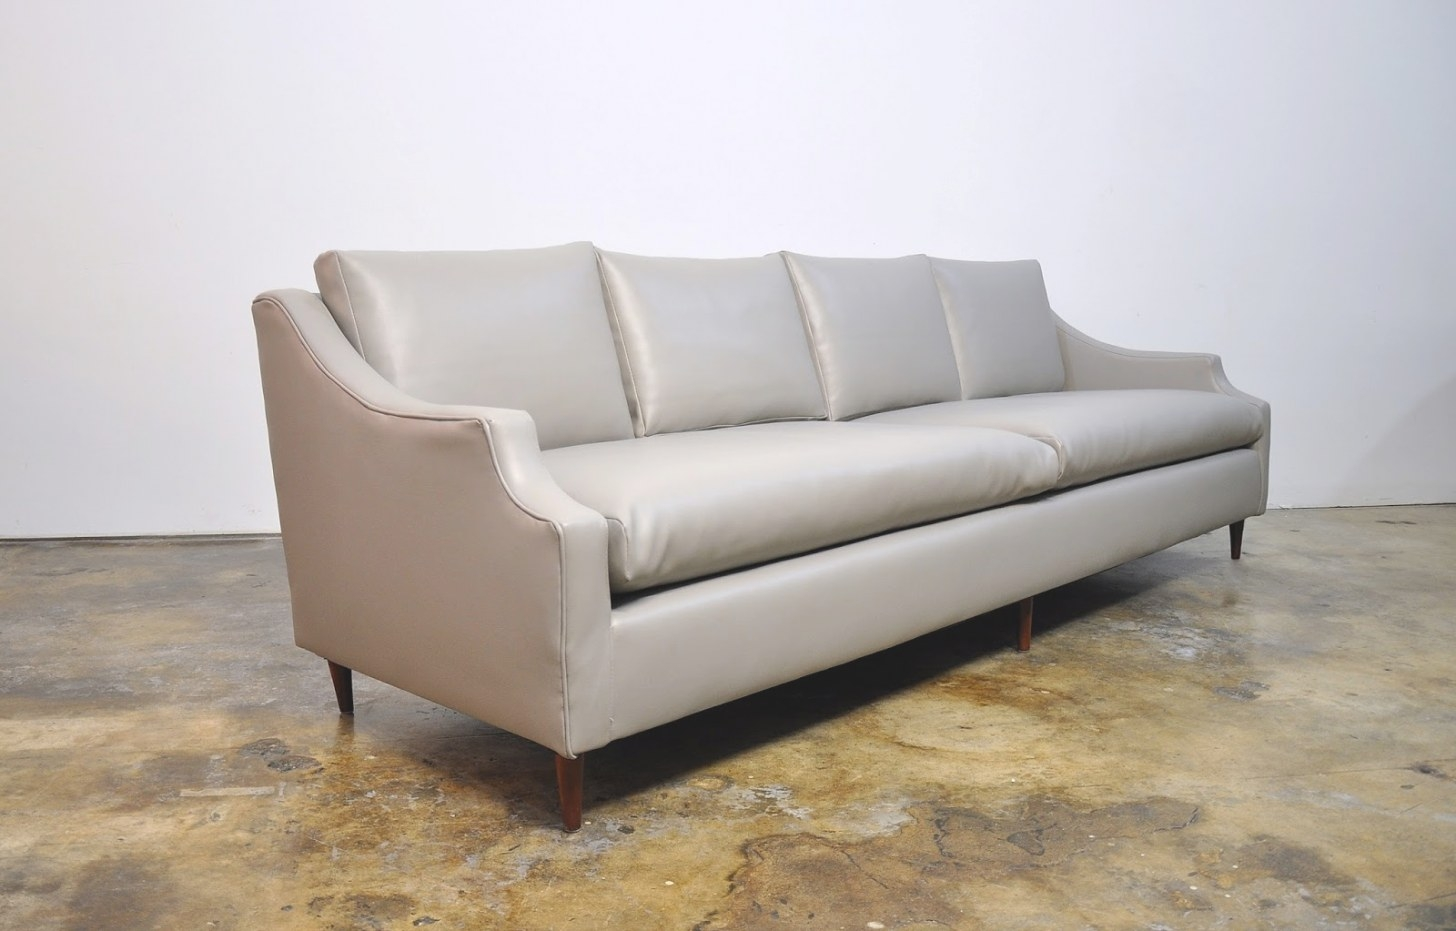 Select Modern: Mid Century Sofa pertaining to Small Mid Century Modern Sectional